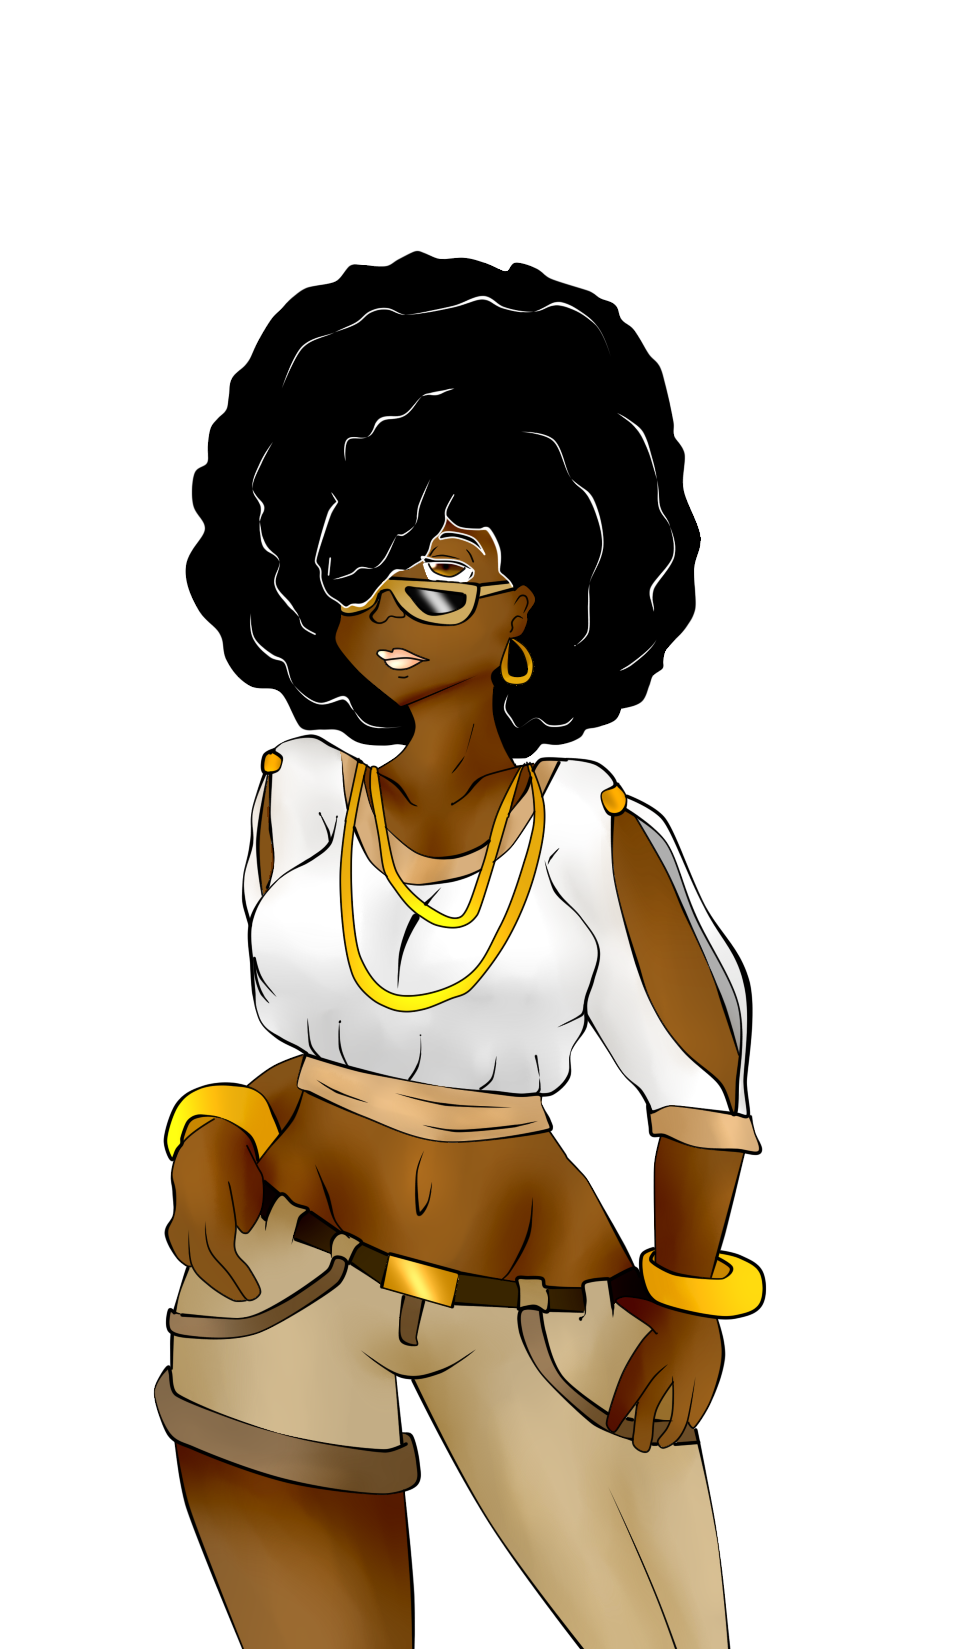 Afro hair in crown woman clipart clipart freeuse stock Afro girl | Art & Design | Pinterest | Black women art, African ... clipart freeuse stock